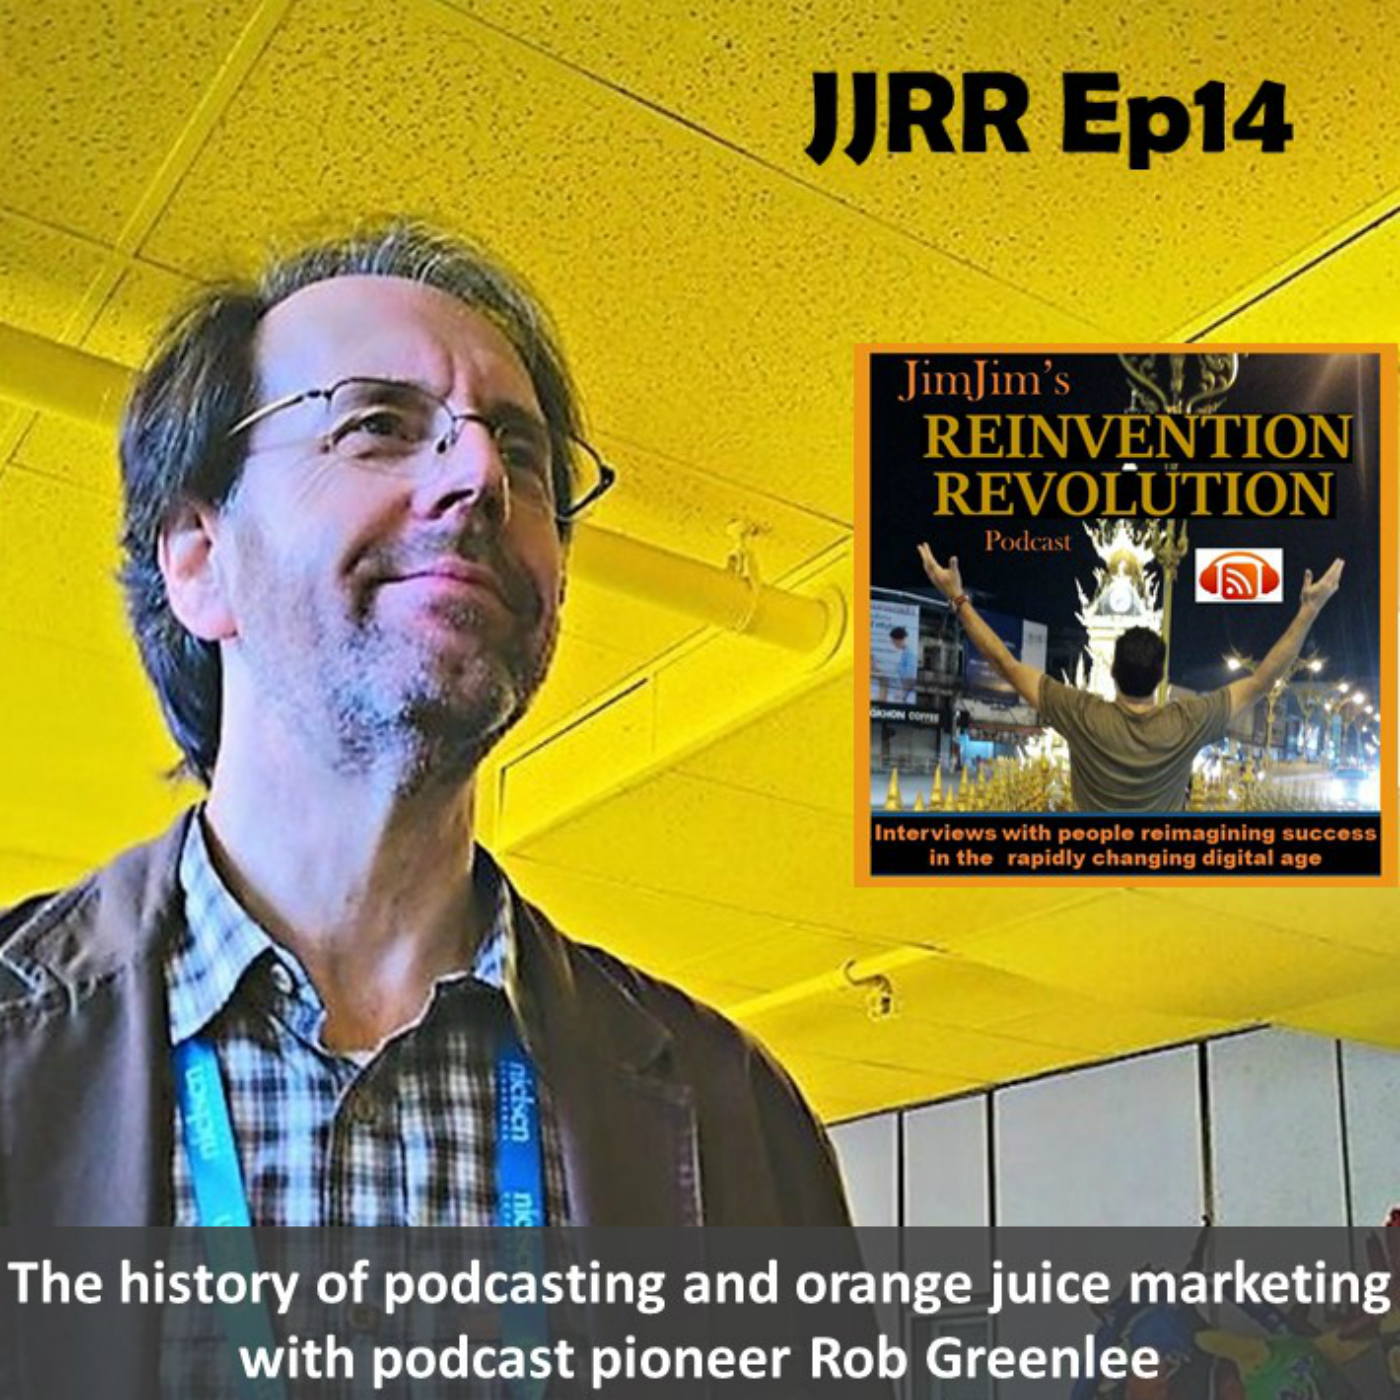 JJRR Ep14  The history of podcasting and orange juice marketing with podcast pioneer Rob Greenlee